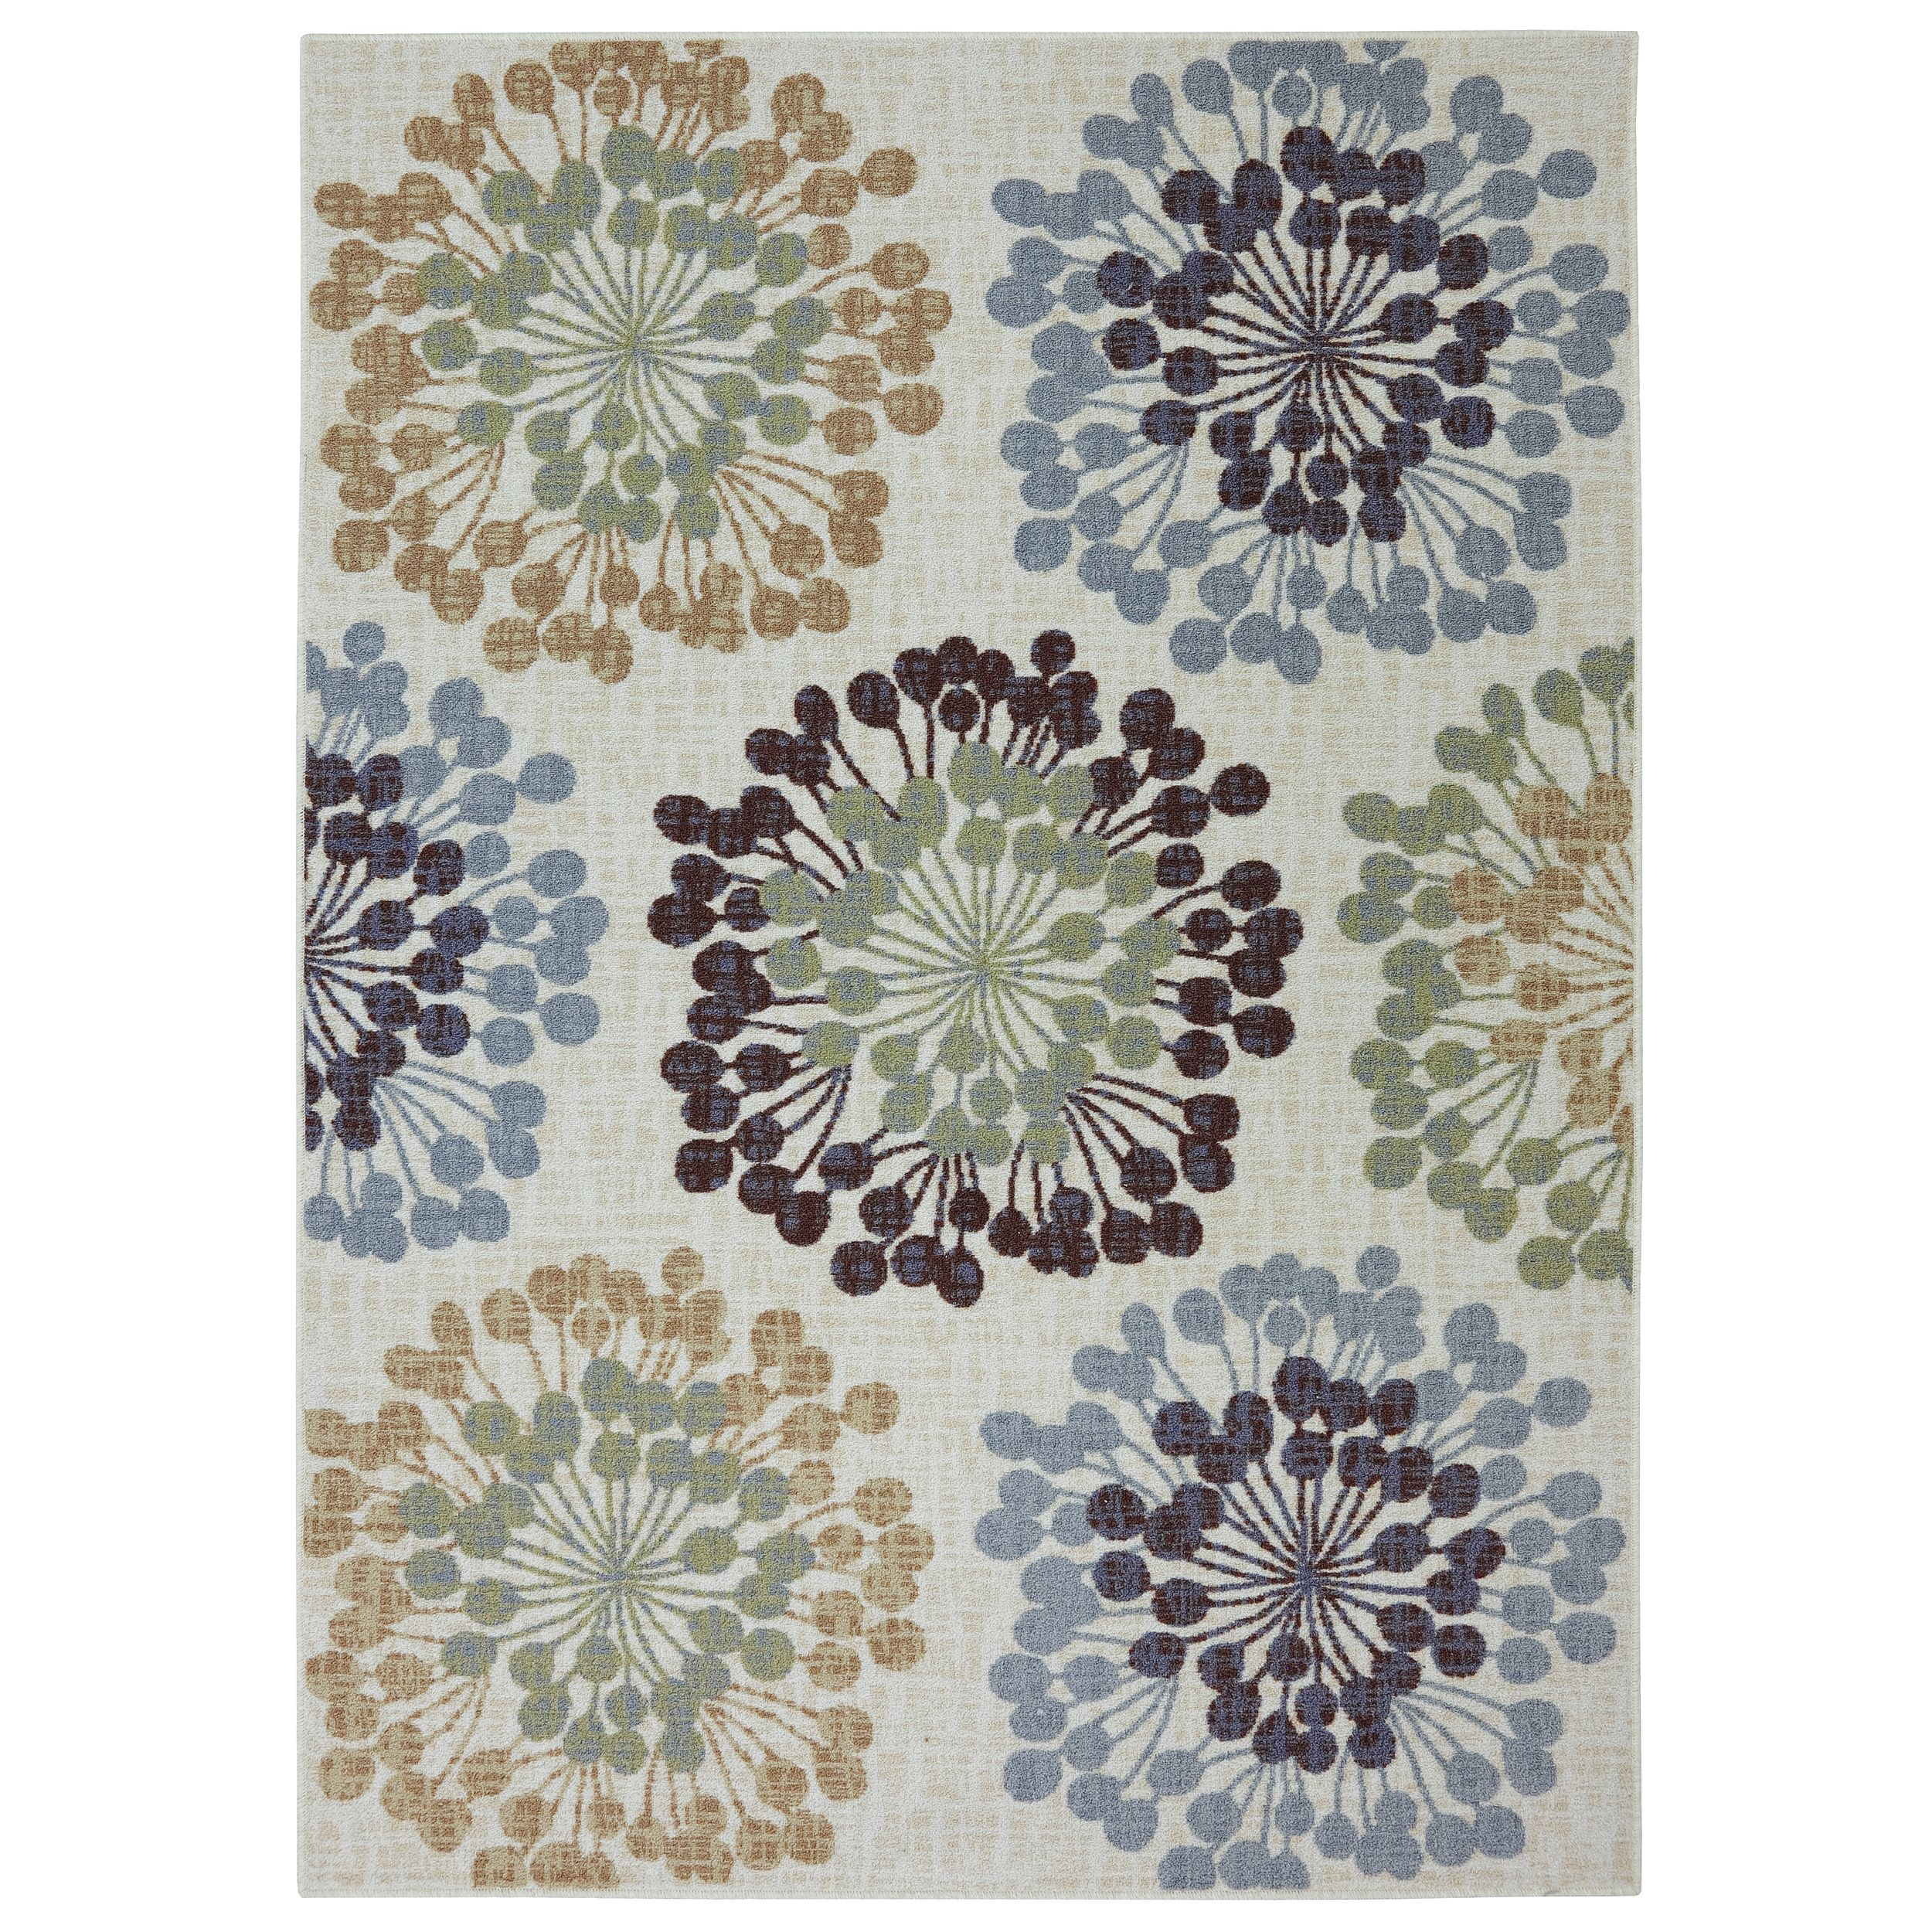 Combining muted hues, this design will set the foundation for a tranquil space within your home. This rug is extremely durable and vibrant.